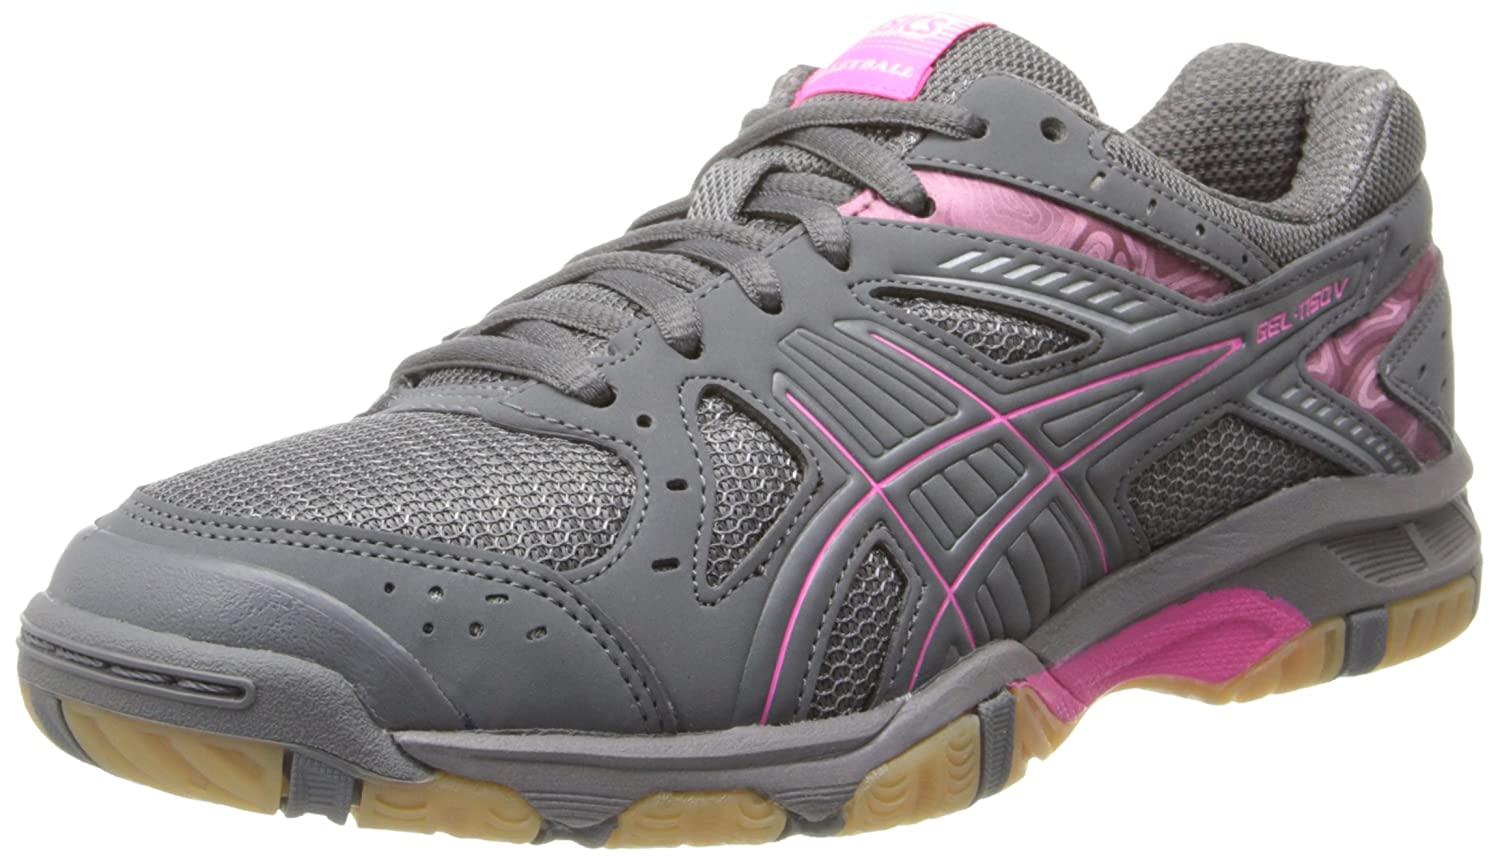 ASICS Women's Gel 1150V Volley Ball Shoe B00GY05FIW 12 B(M) US|Smoke/Knock Out Pink/Silver